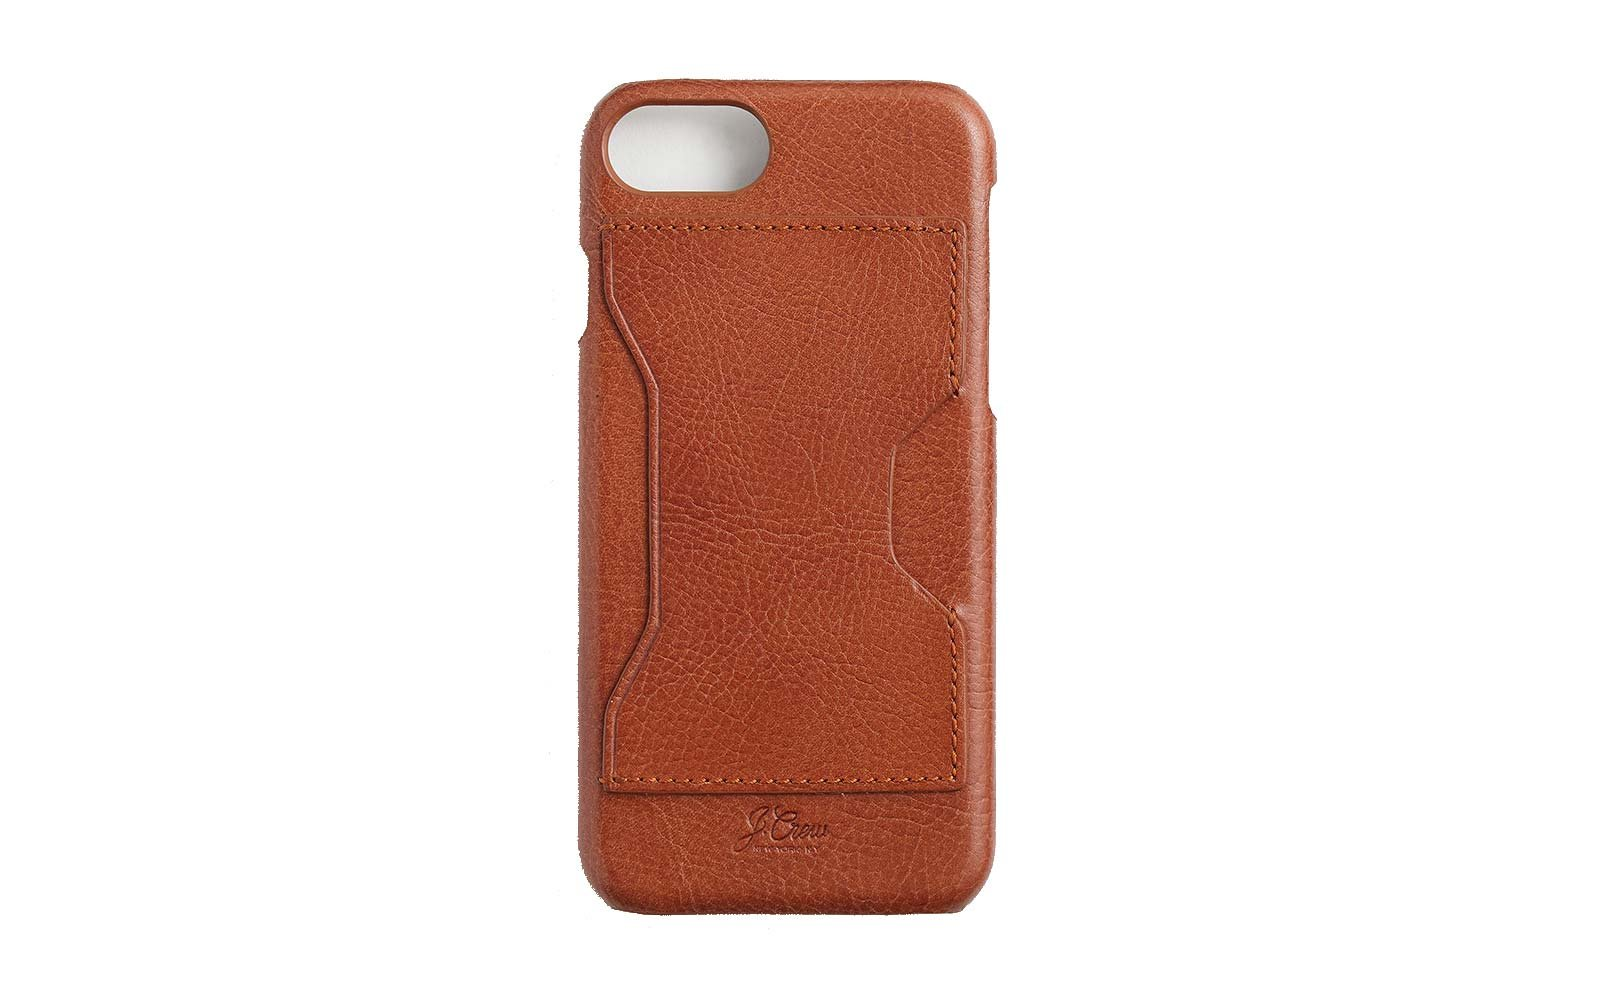 J. Crew leather iphone case with cardholder